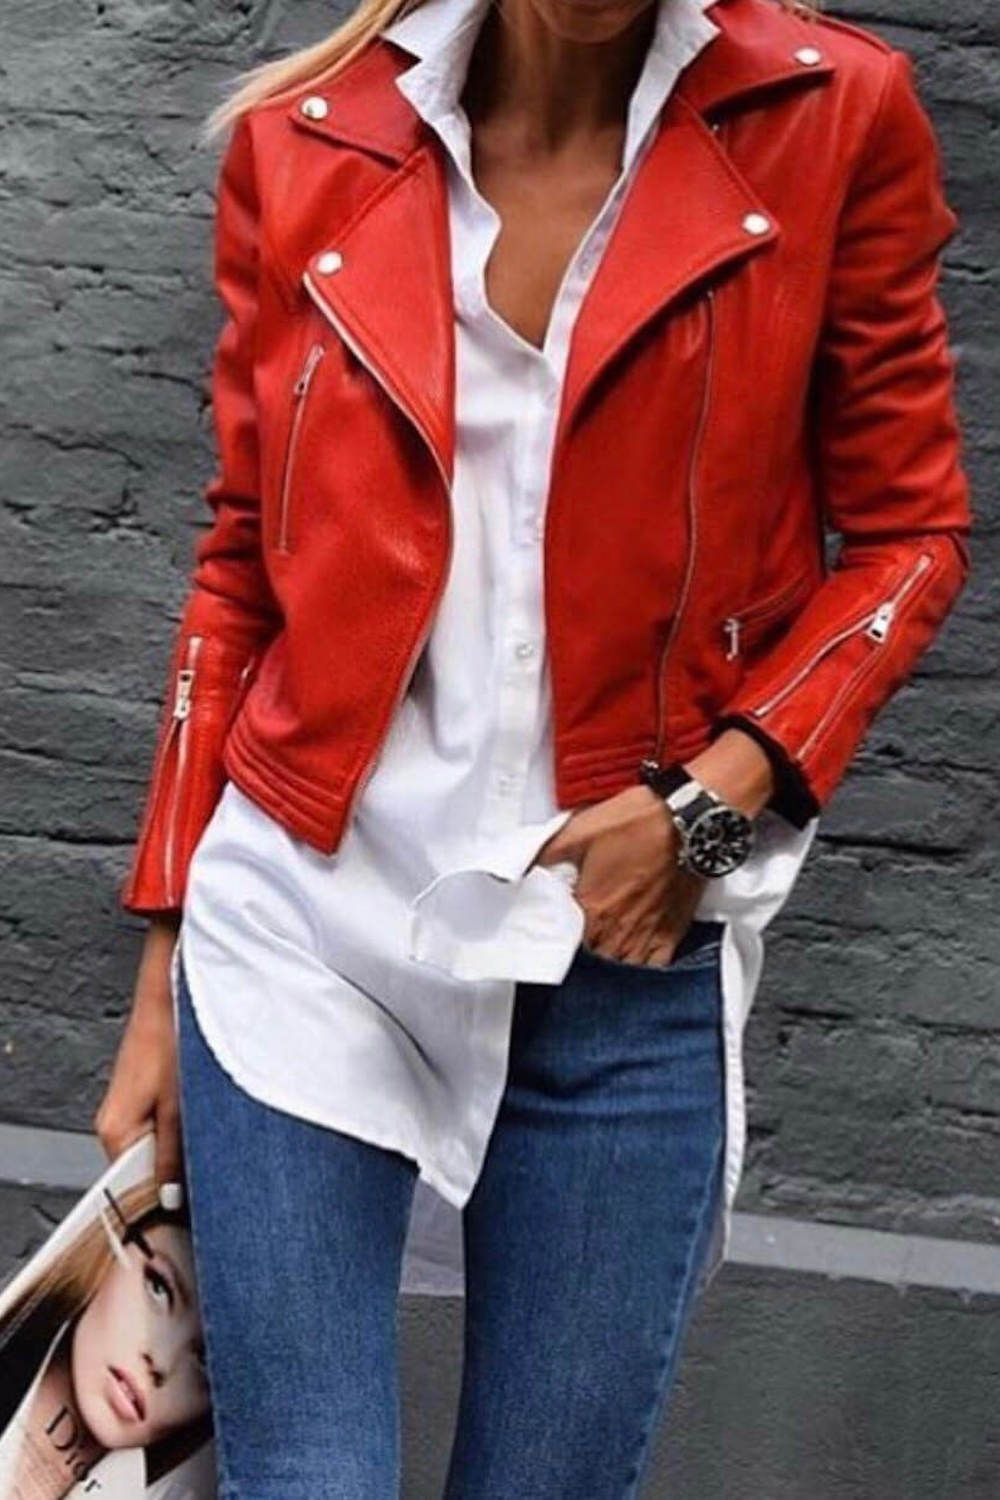 It S Time To Choose A Leather Jacket In 2021 Red Jacket Outfit Red Leather Jacket Outfit Jacket Outfits [ 1500 x 1000 Pixel ]